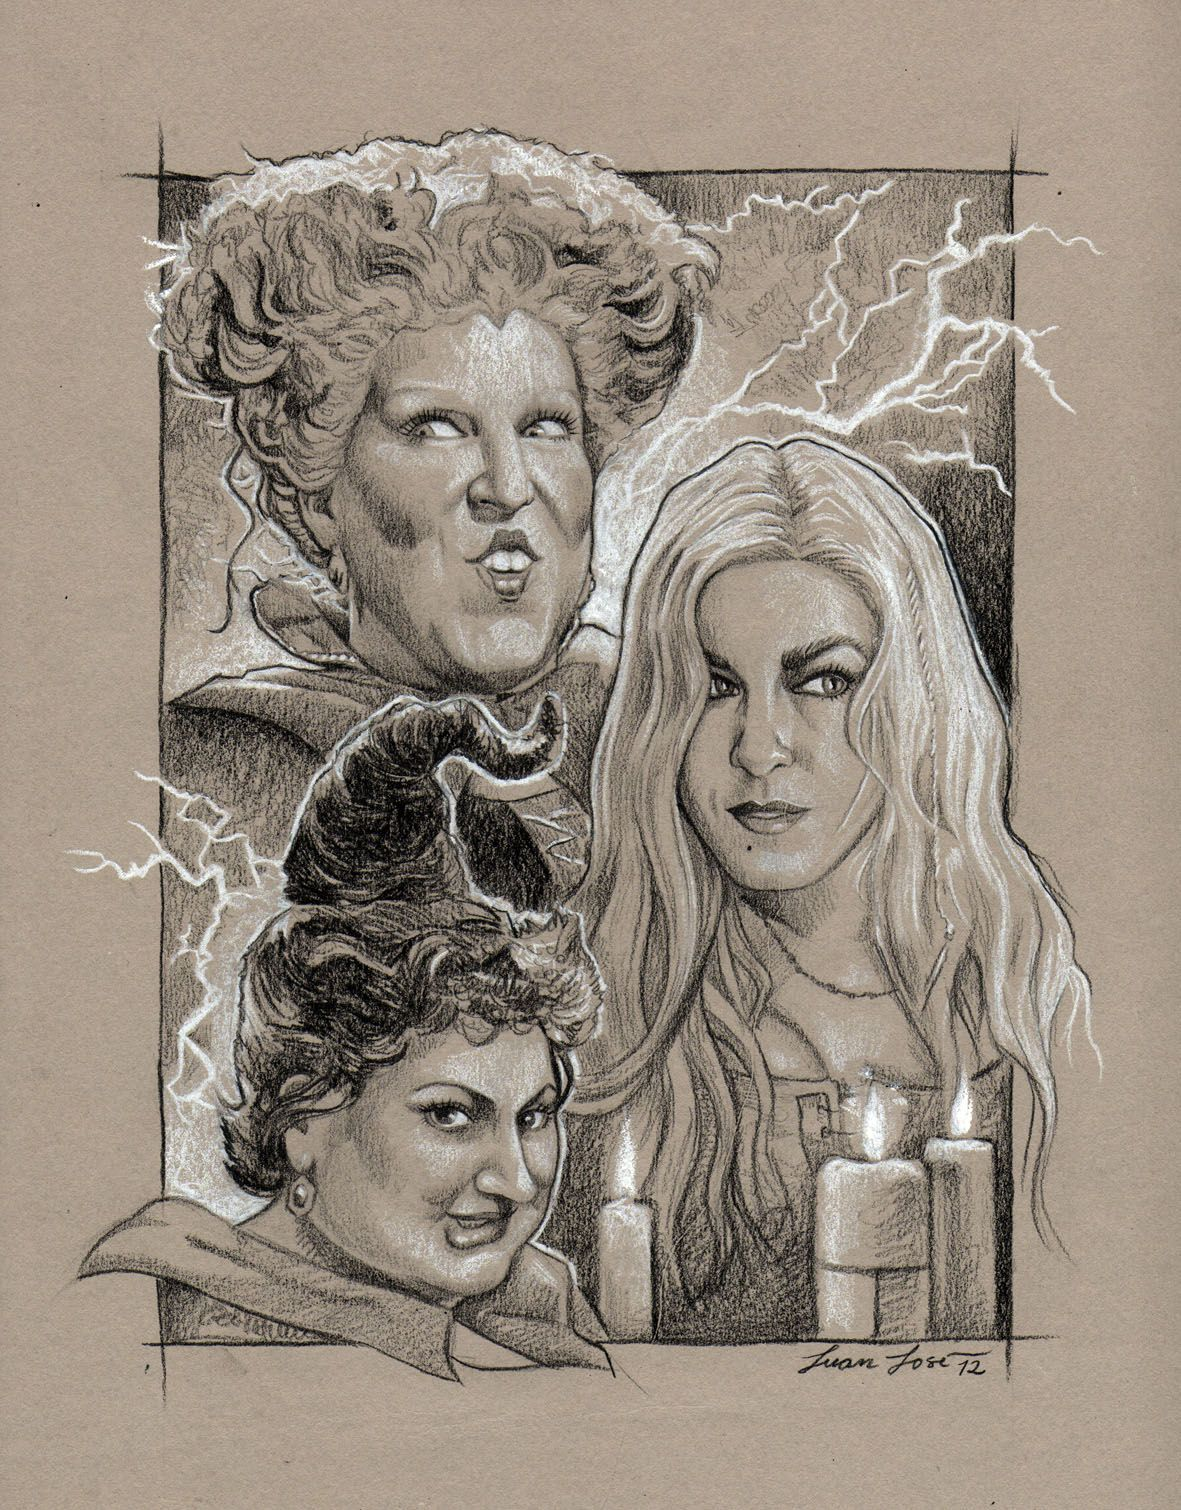 Halloween Town Movie Drawing.Hocus Pocus Drawing Made With Black And White Pencils Over Gray